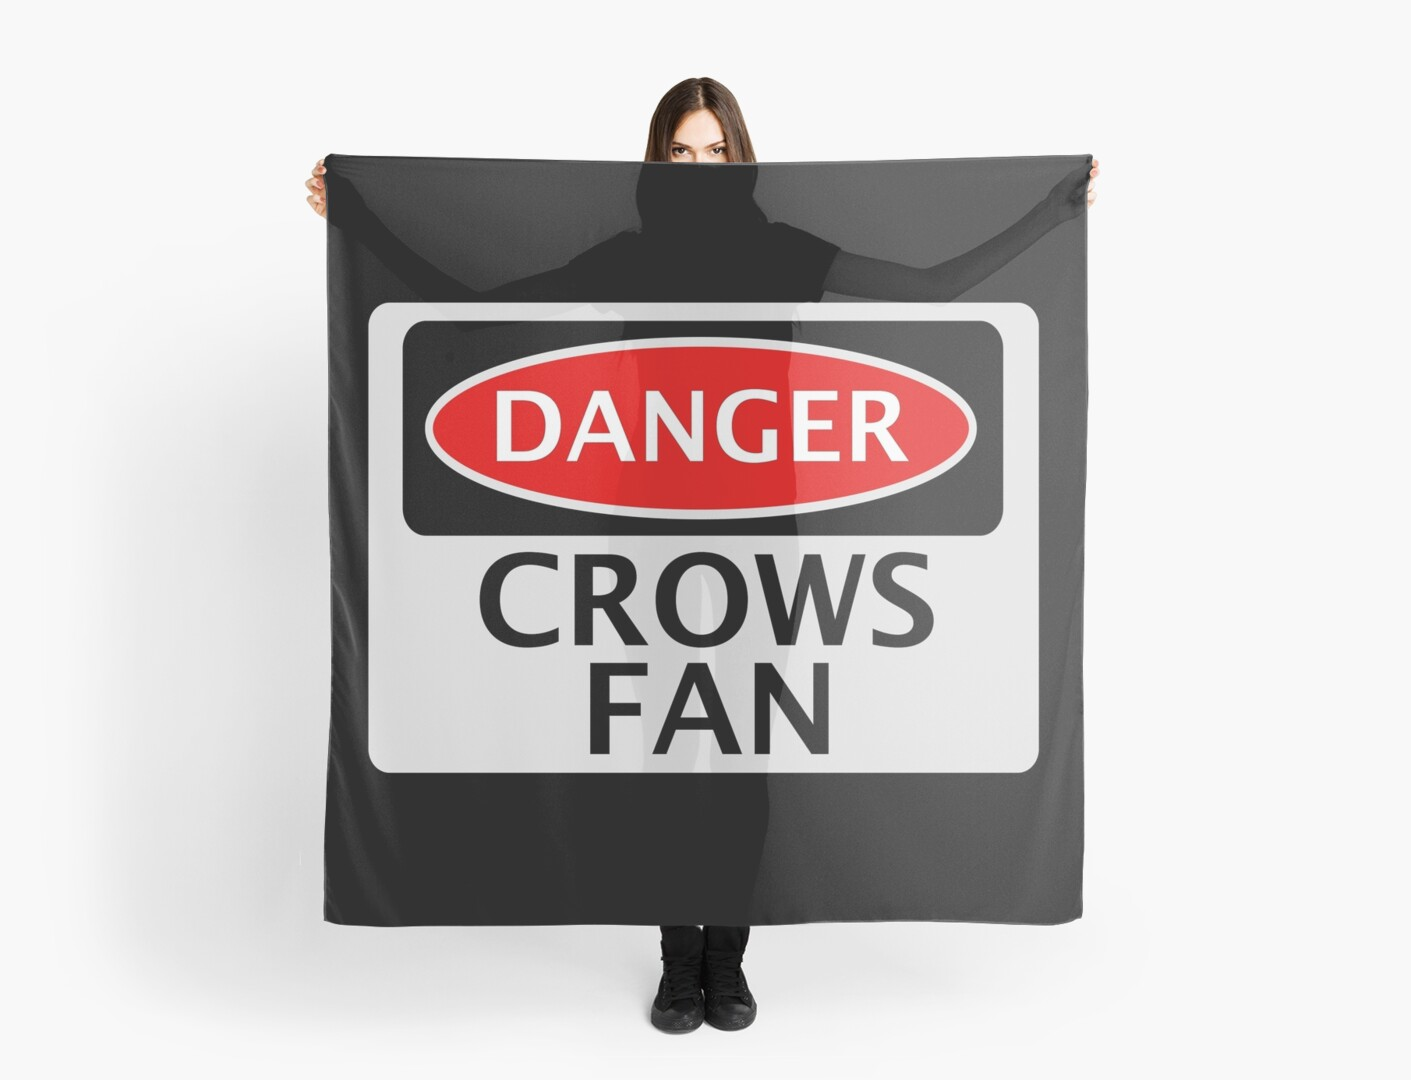 DANGER CROWS FAN FAKE FUNNY SAFETY SIGN SIGNAGE by DangerSigns